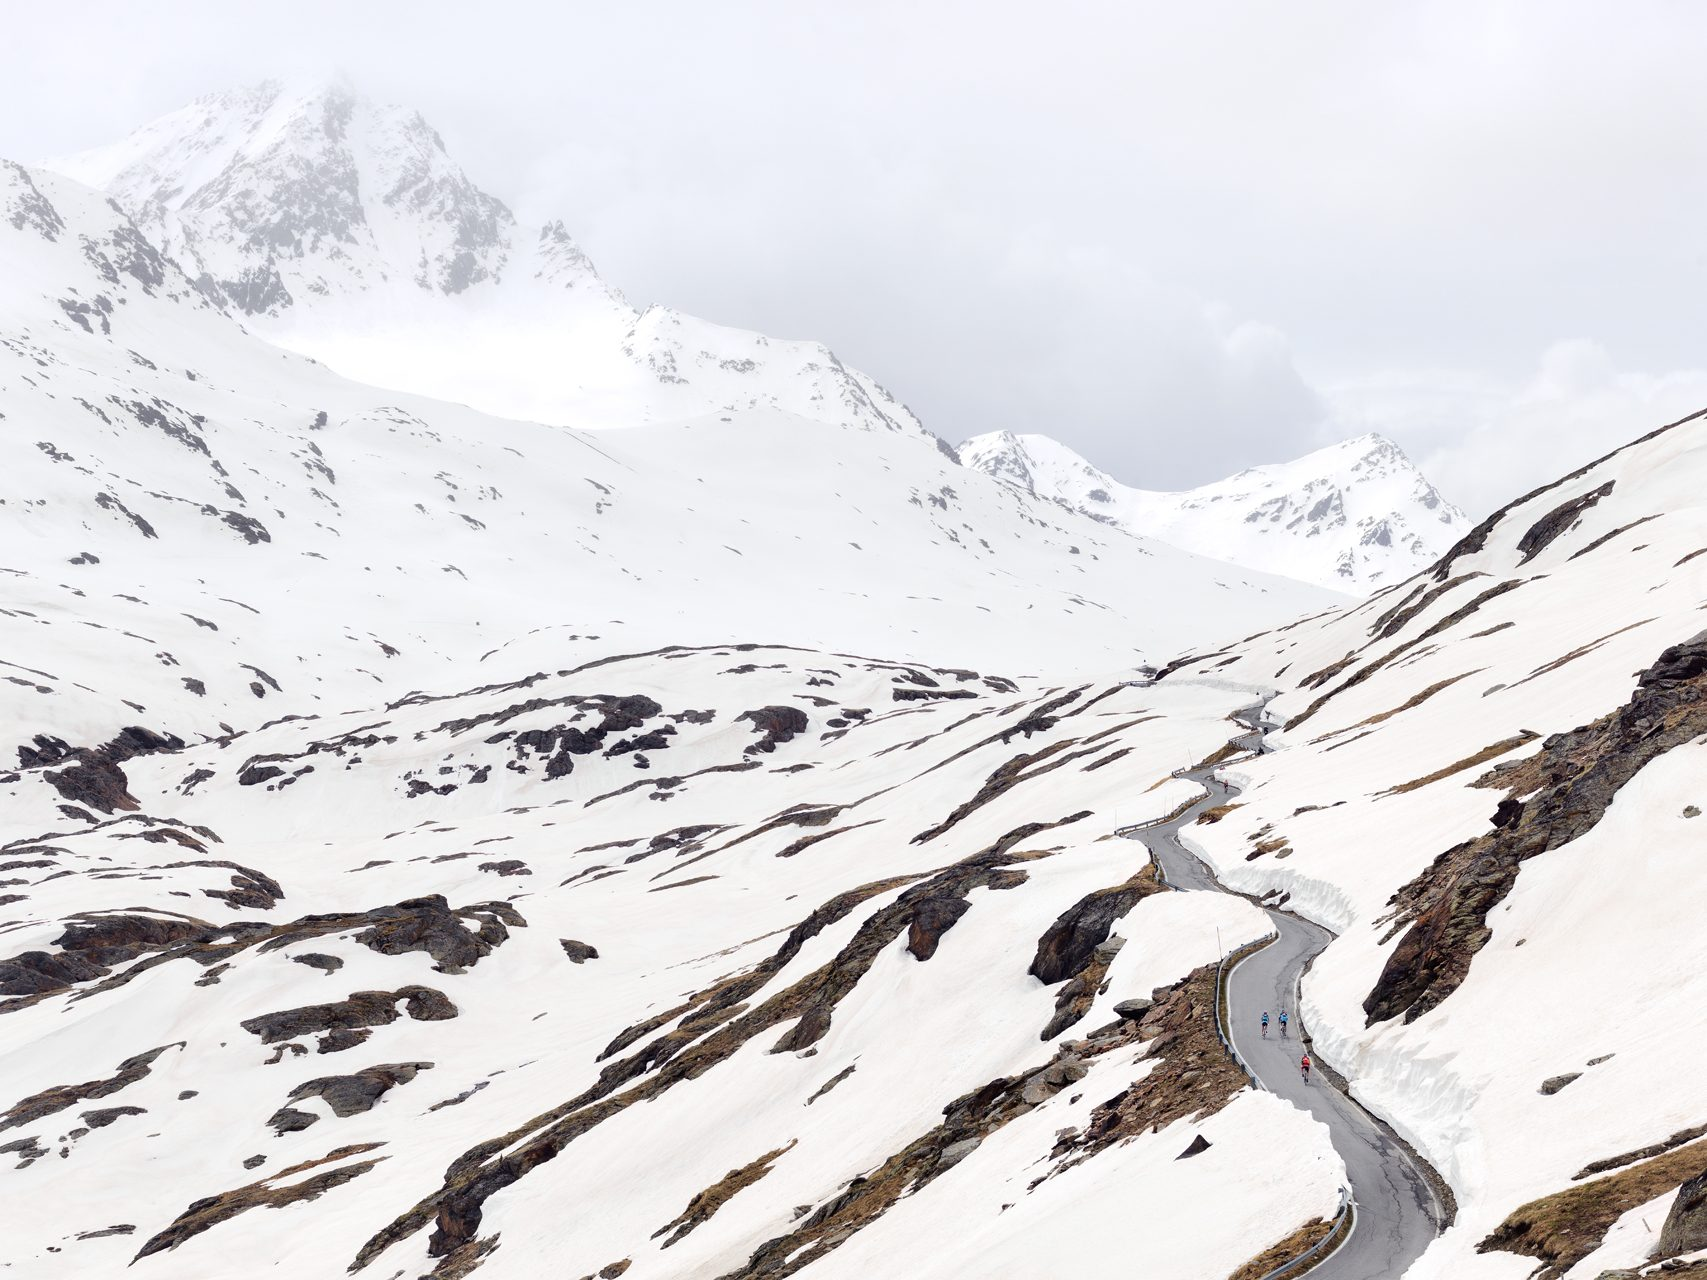 PREVIOUS:EPIC CYCLING CLIMBS - We talked with the photographer Michael Blann about his book